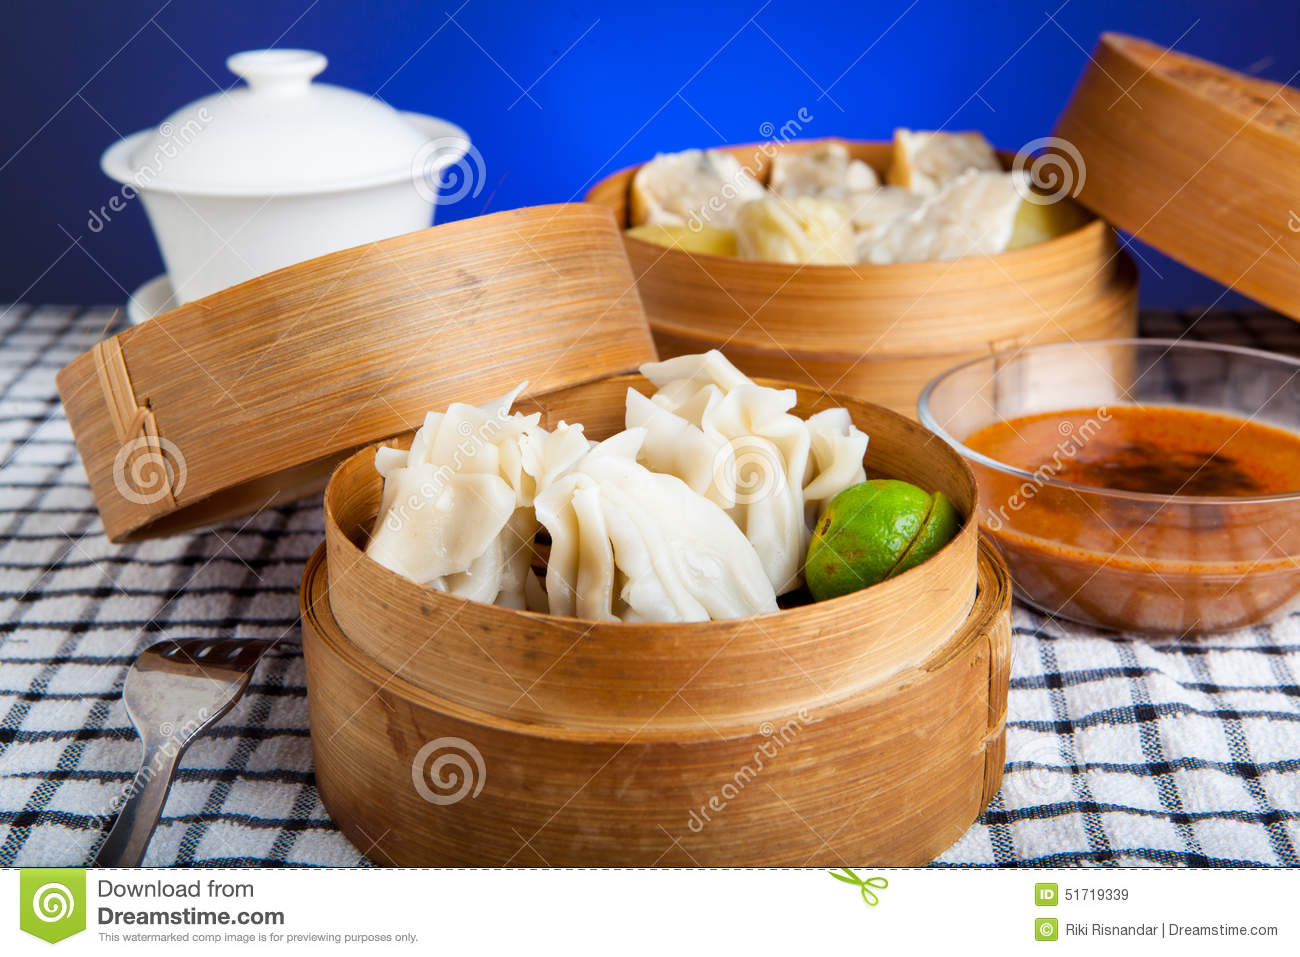 Tahu stock photos royalty free pictures indonesian food siomay bandung with blue dark background indonesian food siomay bandung it is altavistaventures Image collections